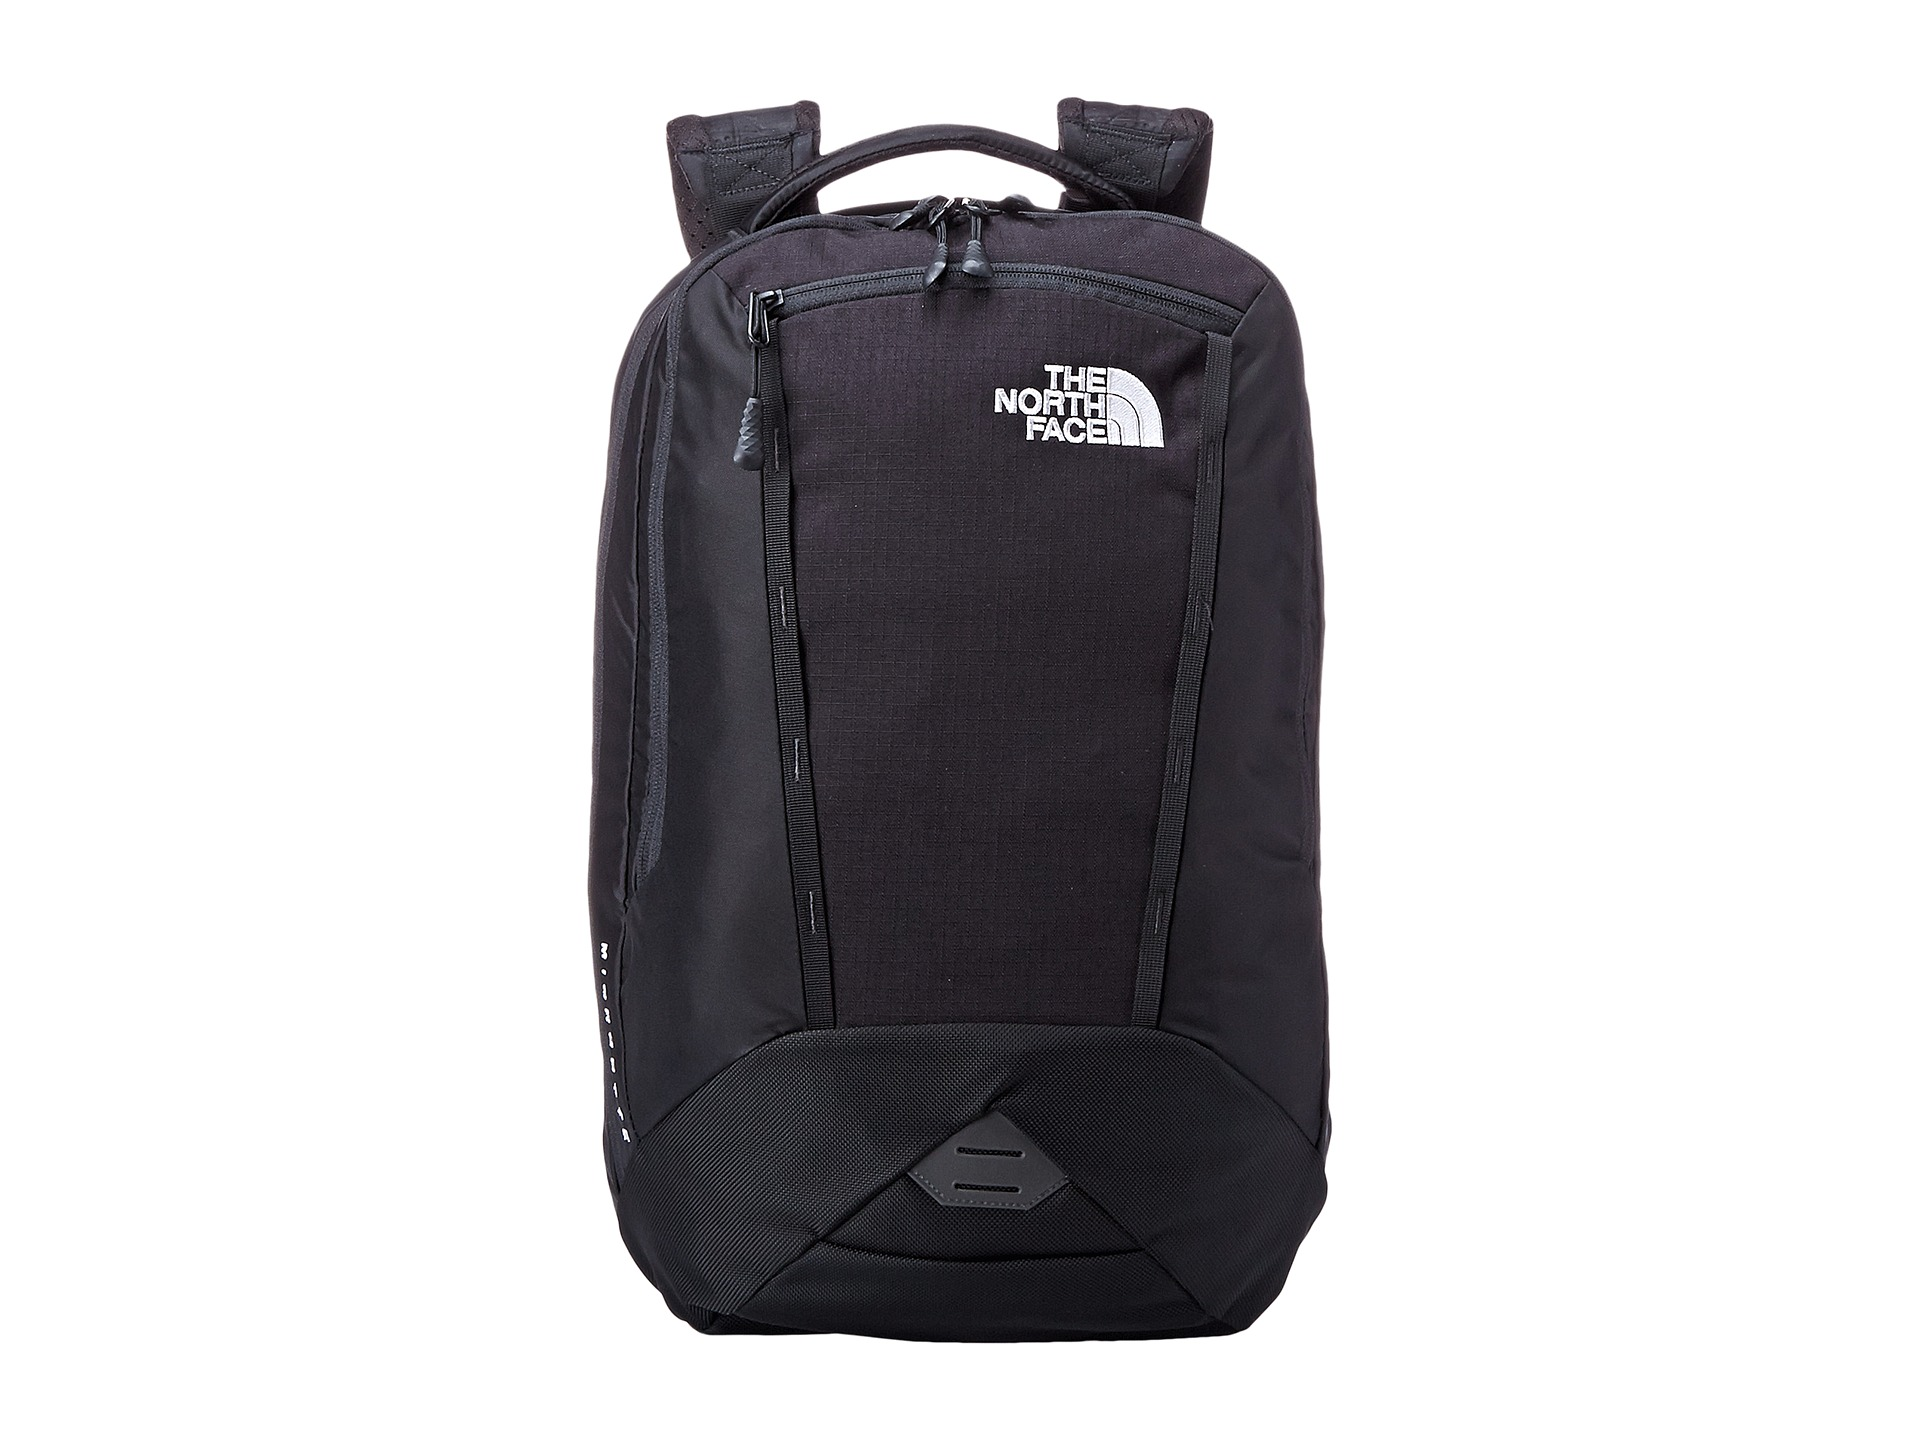 The North Face Women's Microbyte at Zappos.com